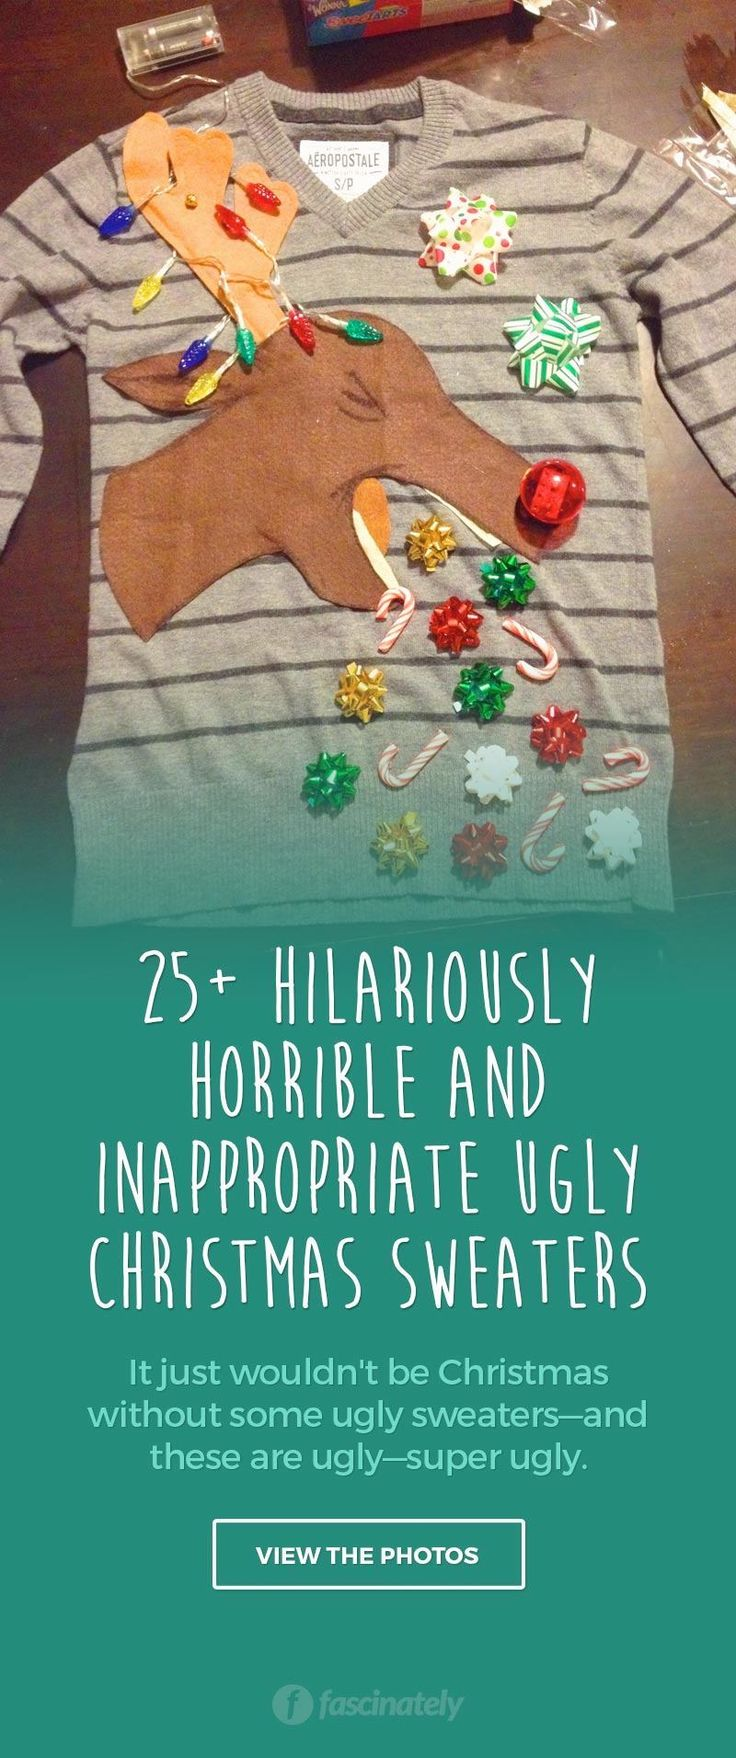 25  Hilariously Horrible and Inappropriate Ugly Christmas Sweaters